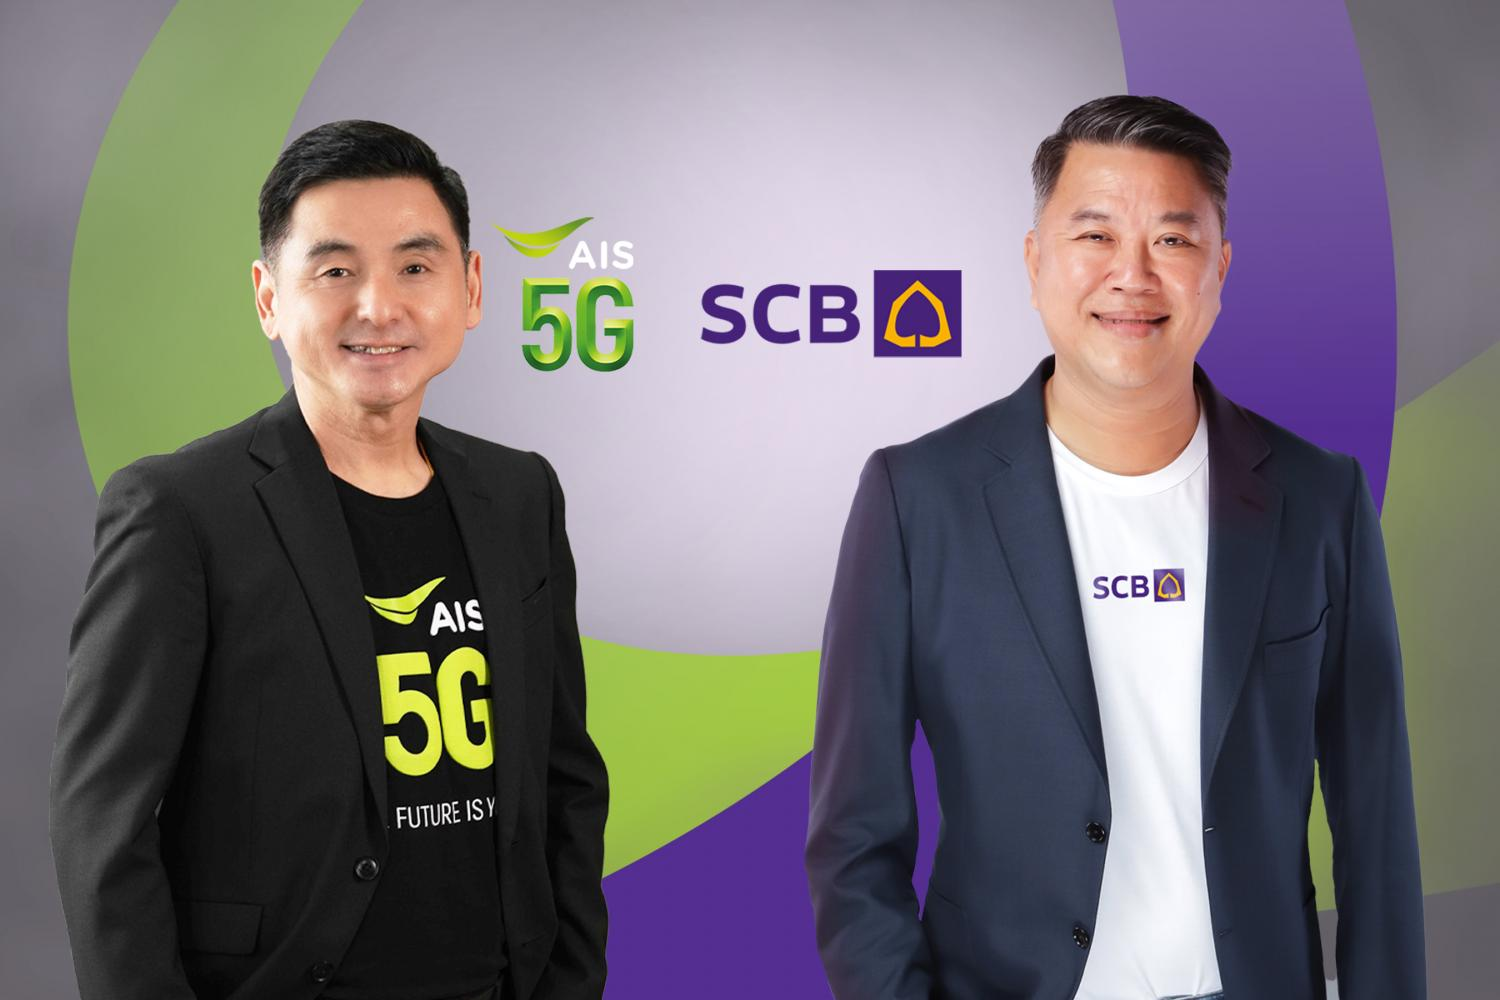 AIS banking on digital venture with SCB